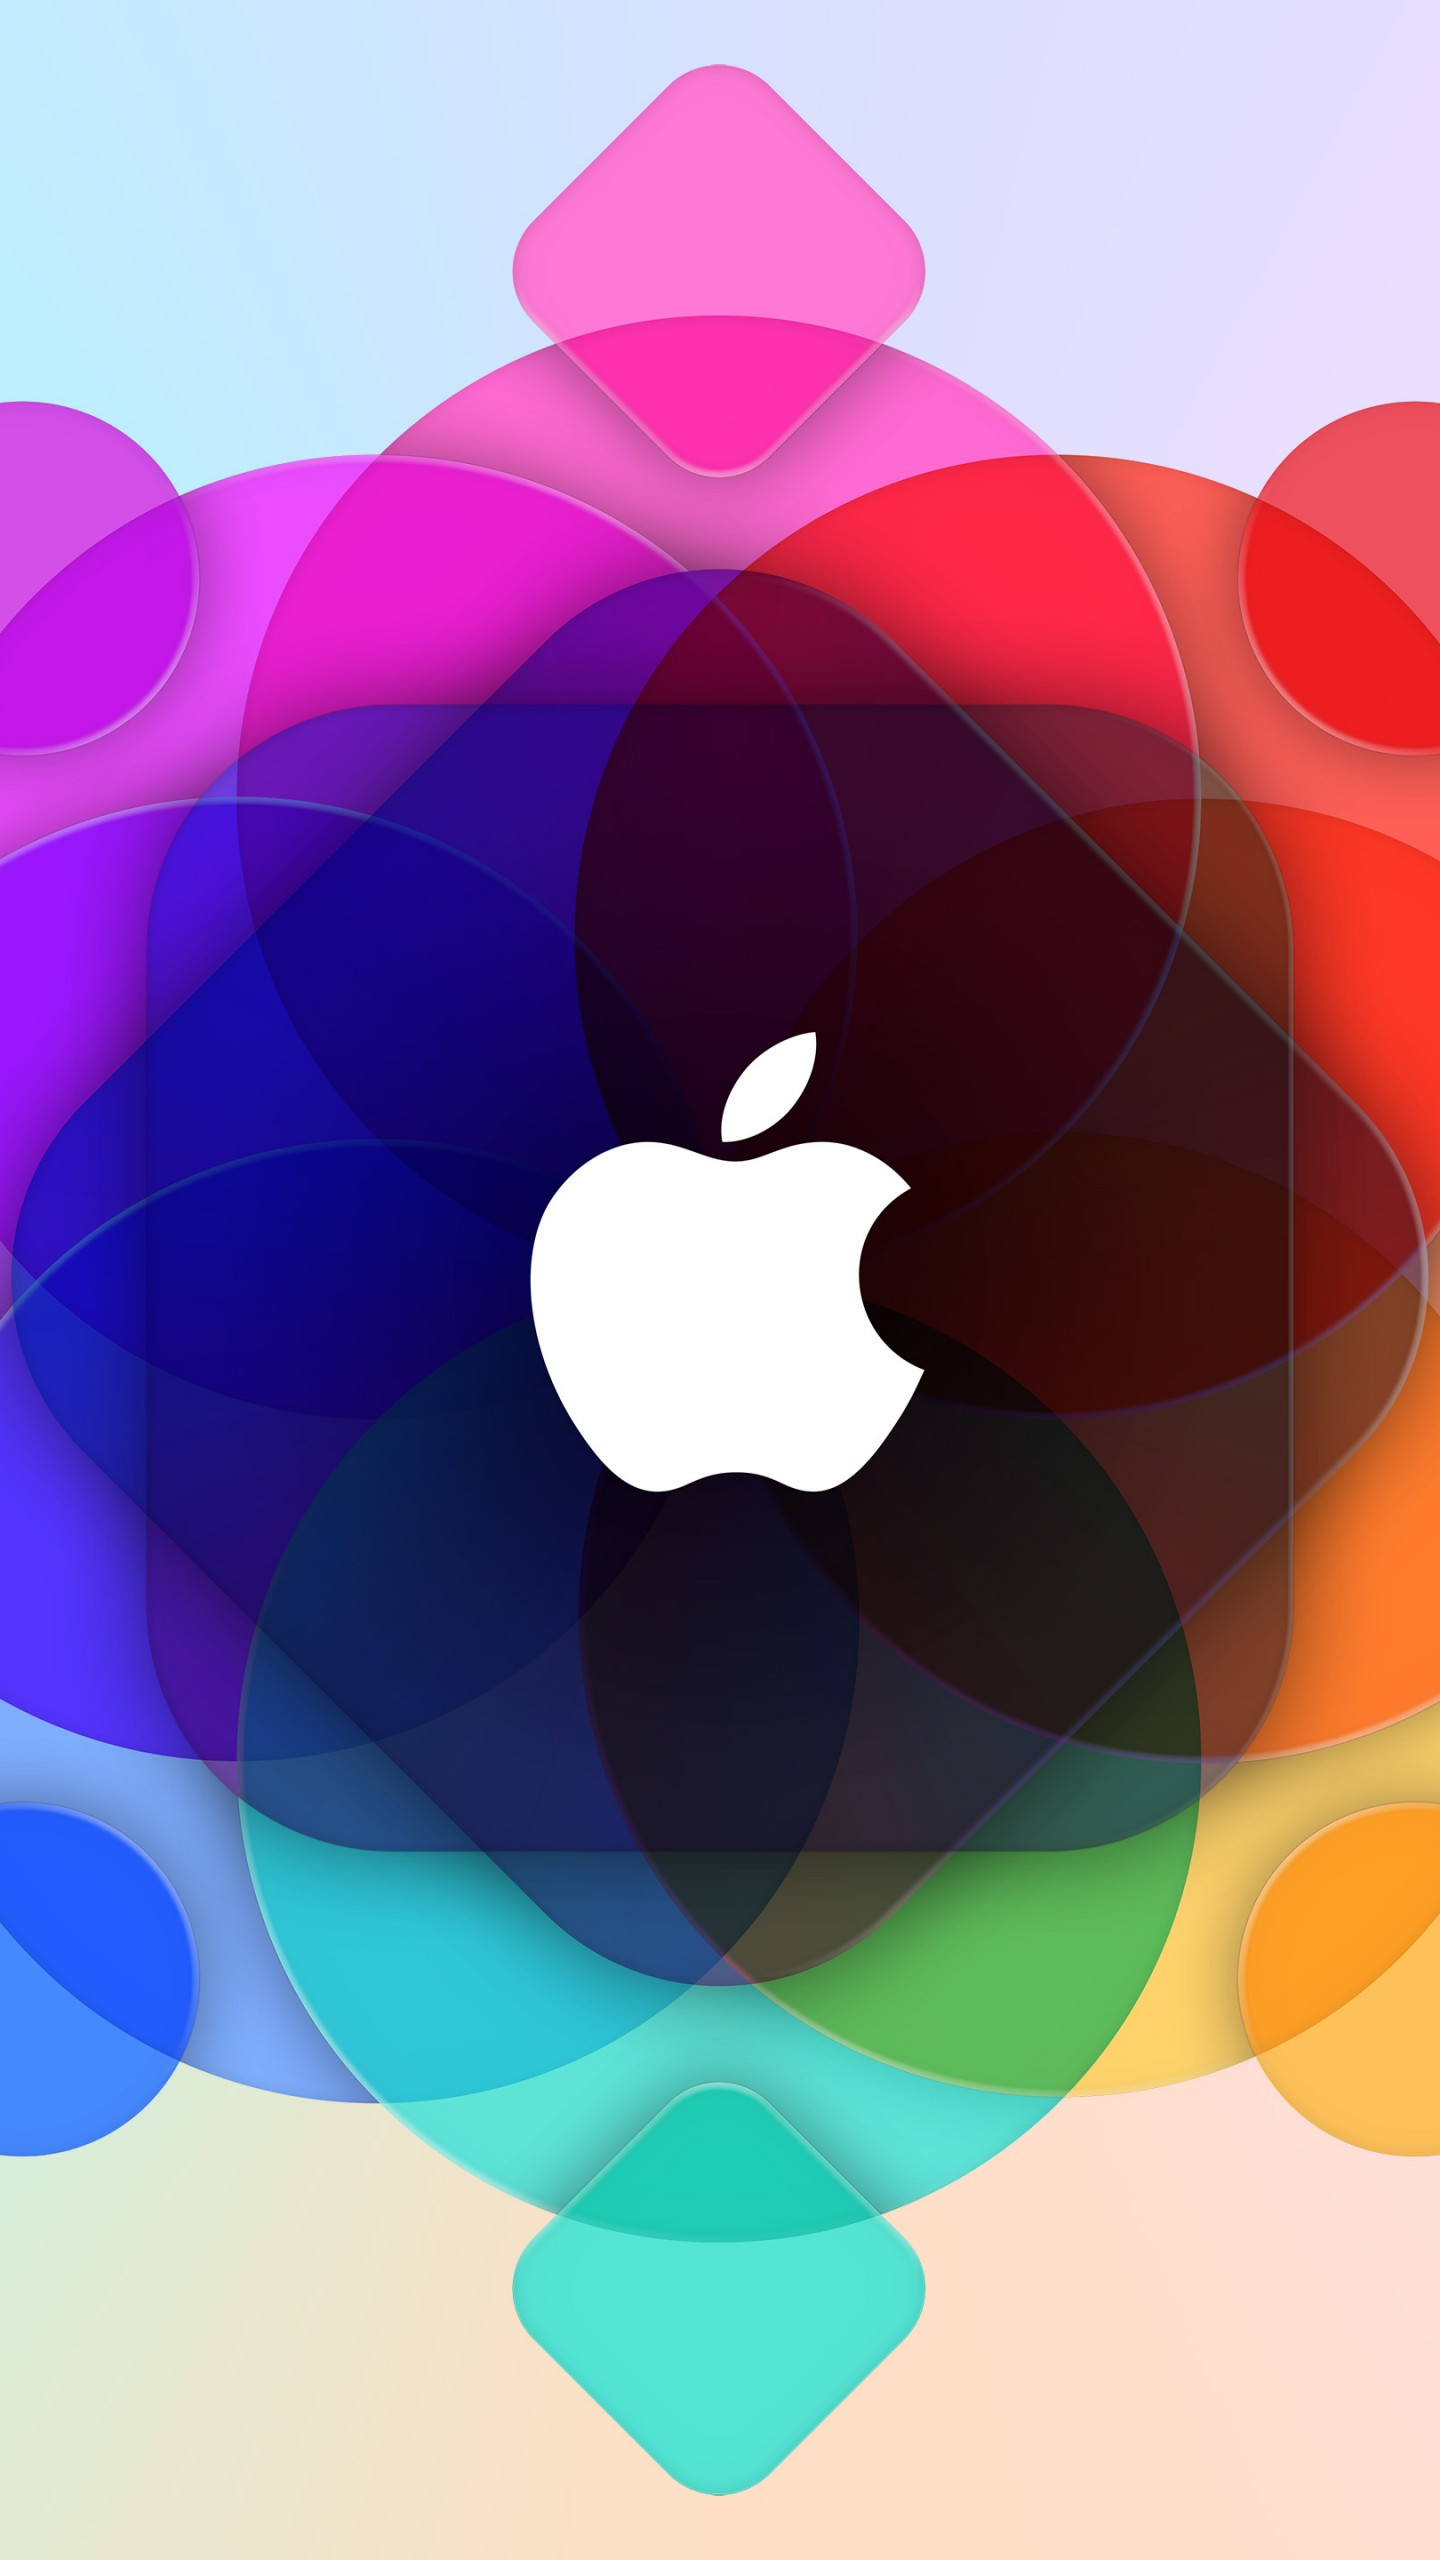 Technology Apple Wallpaper Iphone Logo Wallpaper 4k 644081 Hd Wallpaper Backgrounds Download